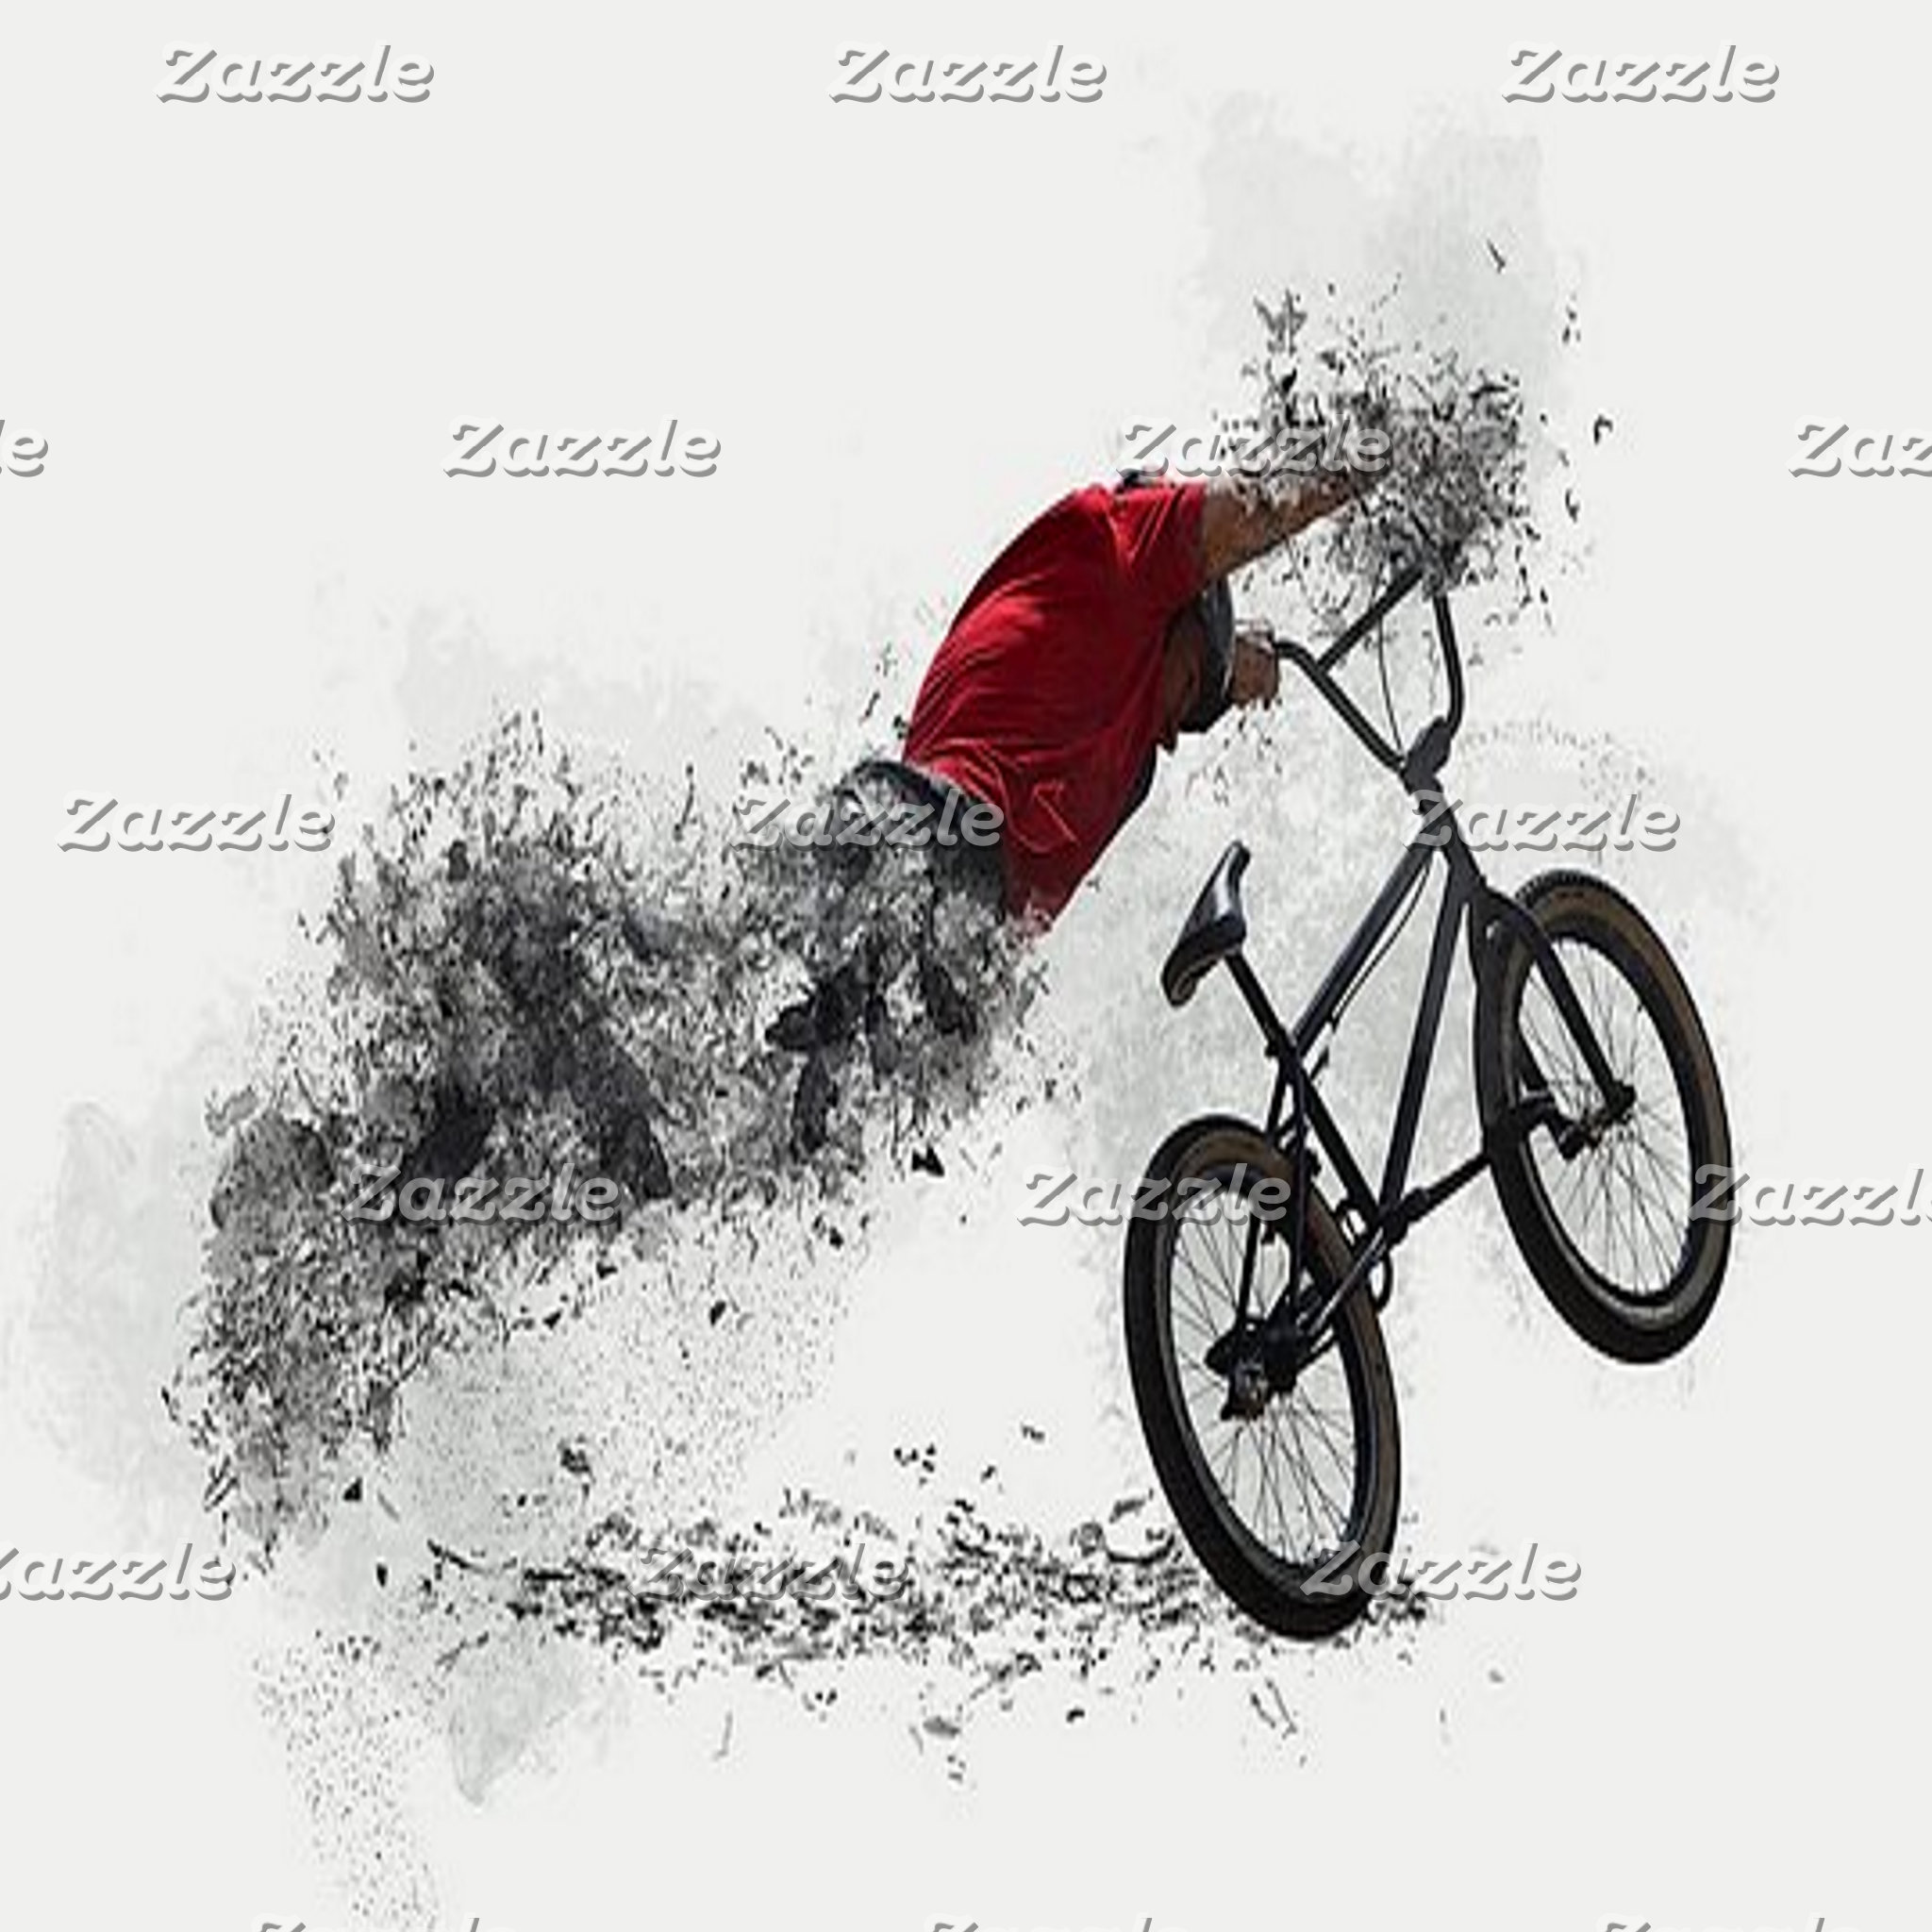 Abstract Art - Bicycles